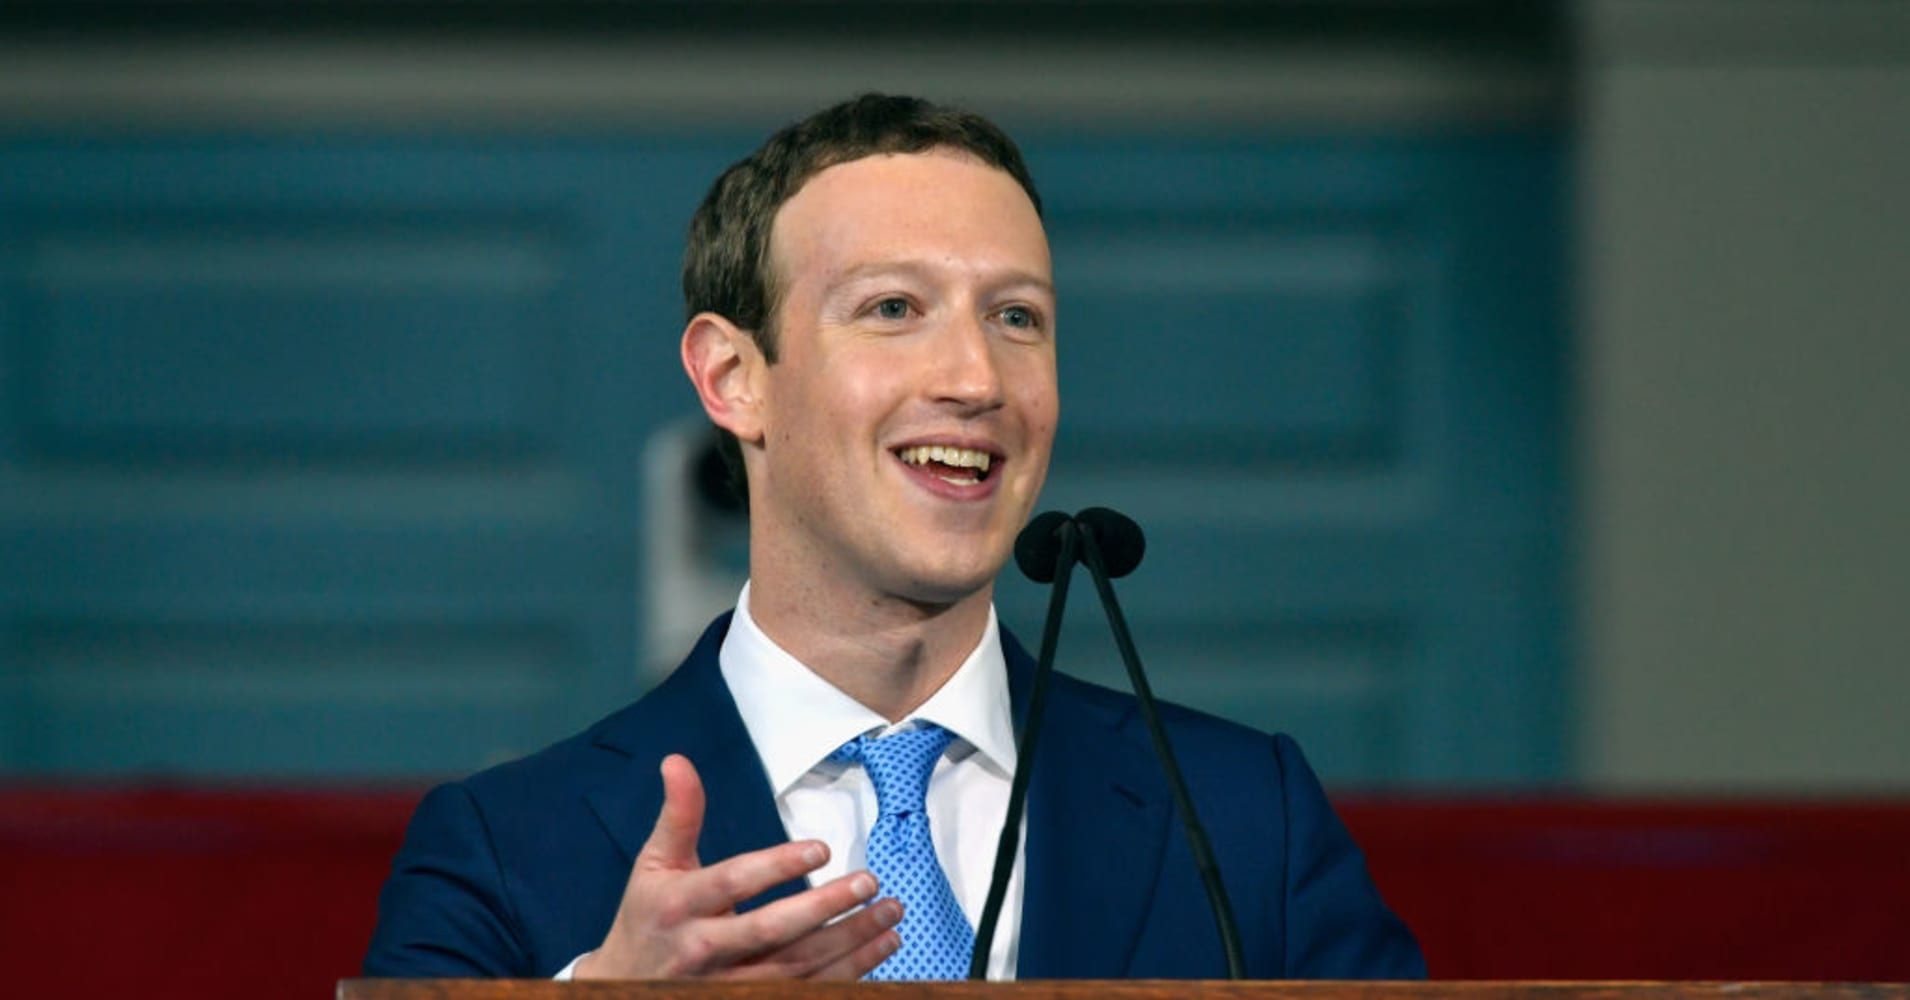 Mark Zuckerberg Just Voiced His Support for Universal Basic Income